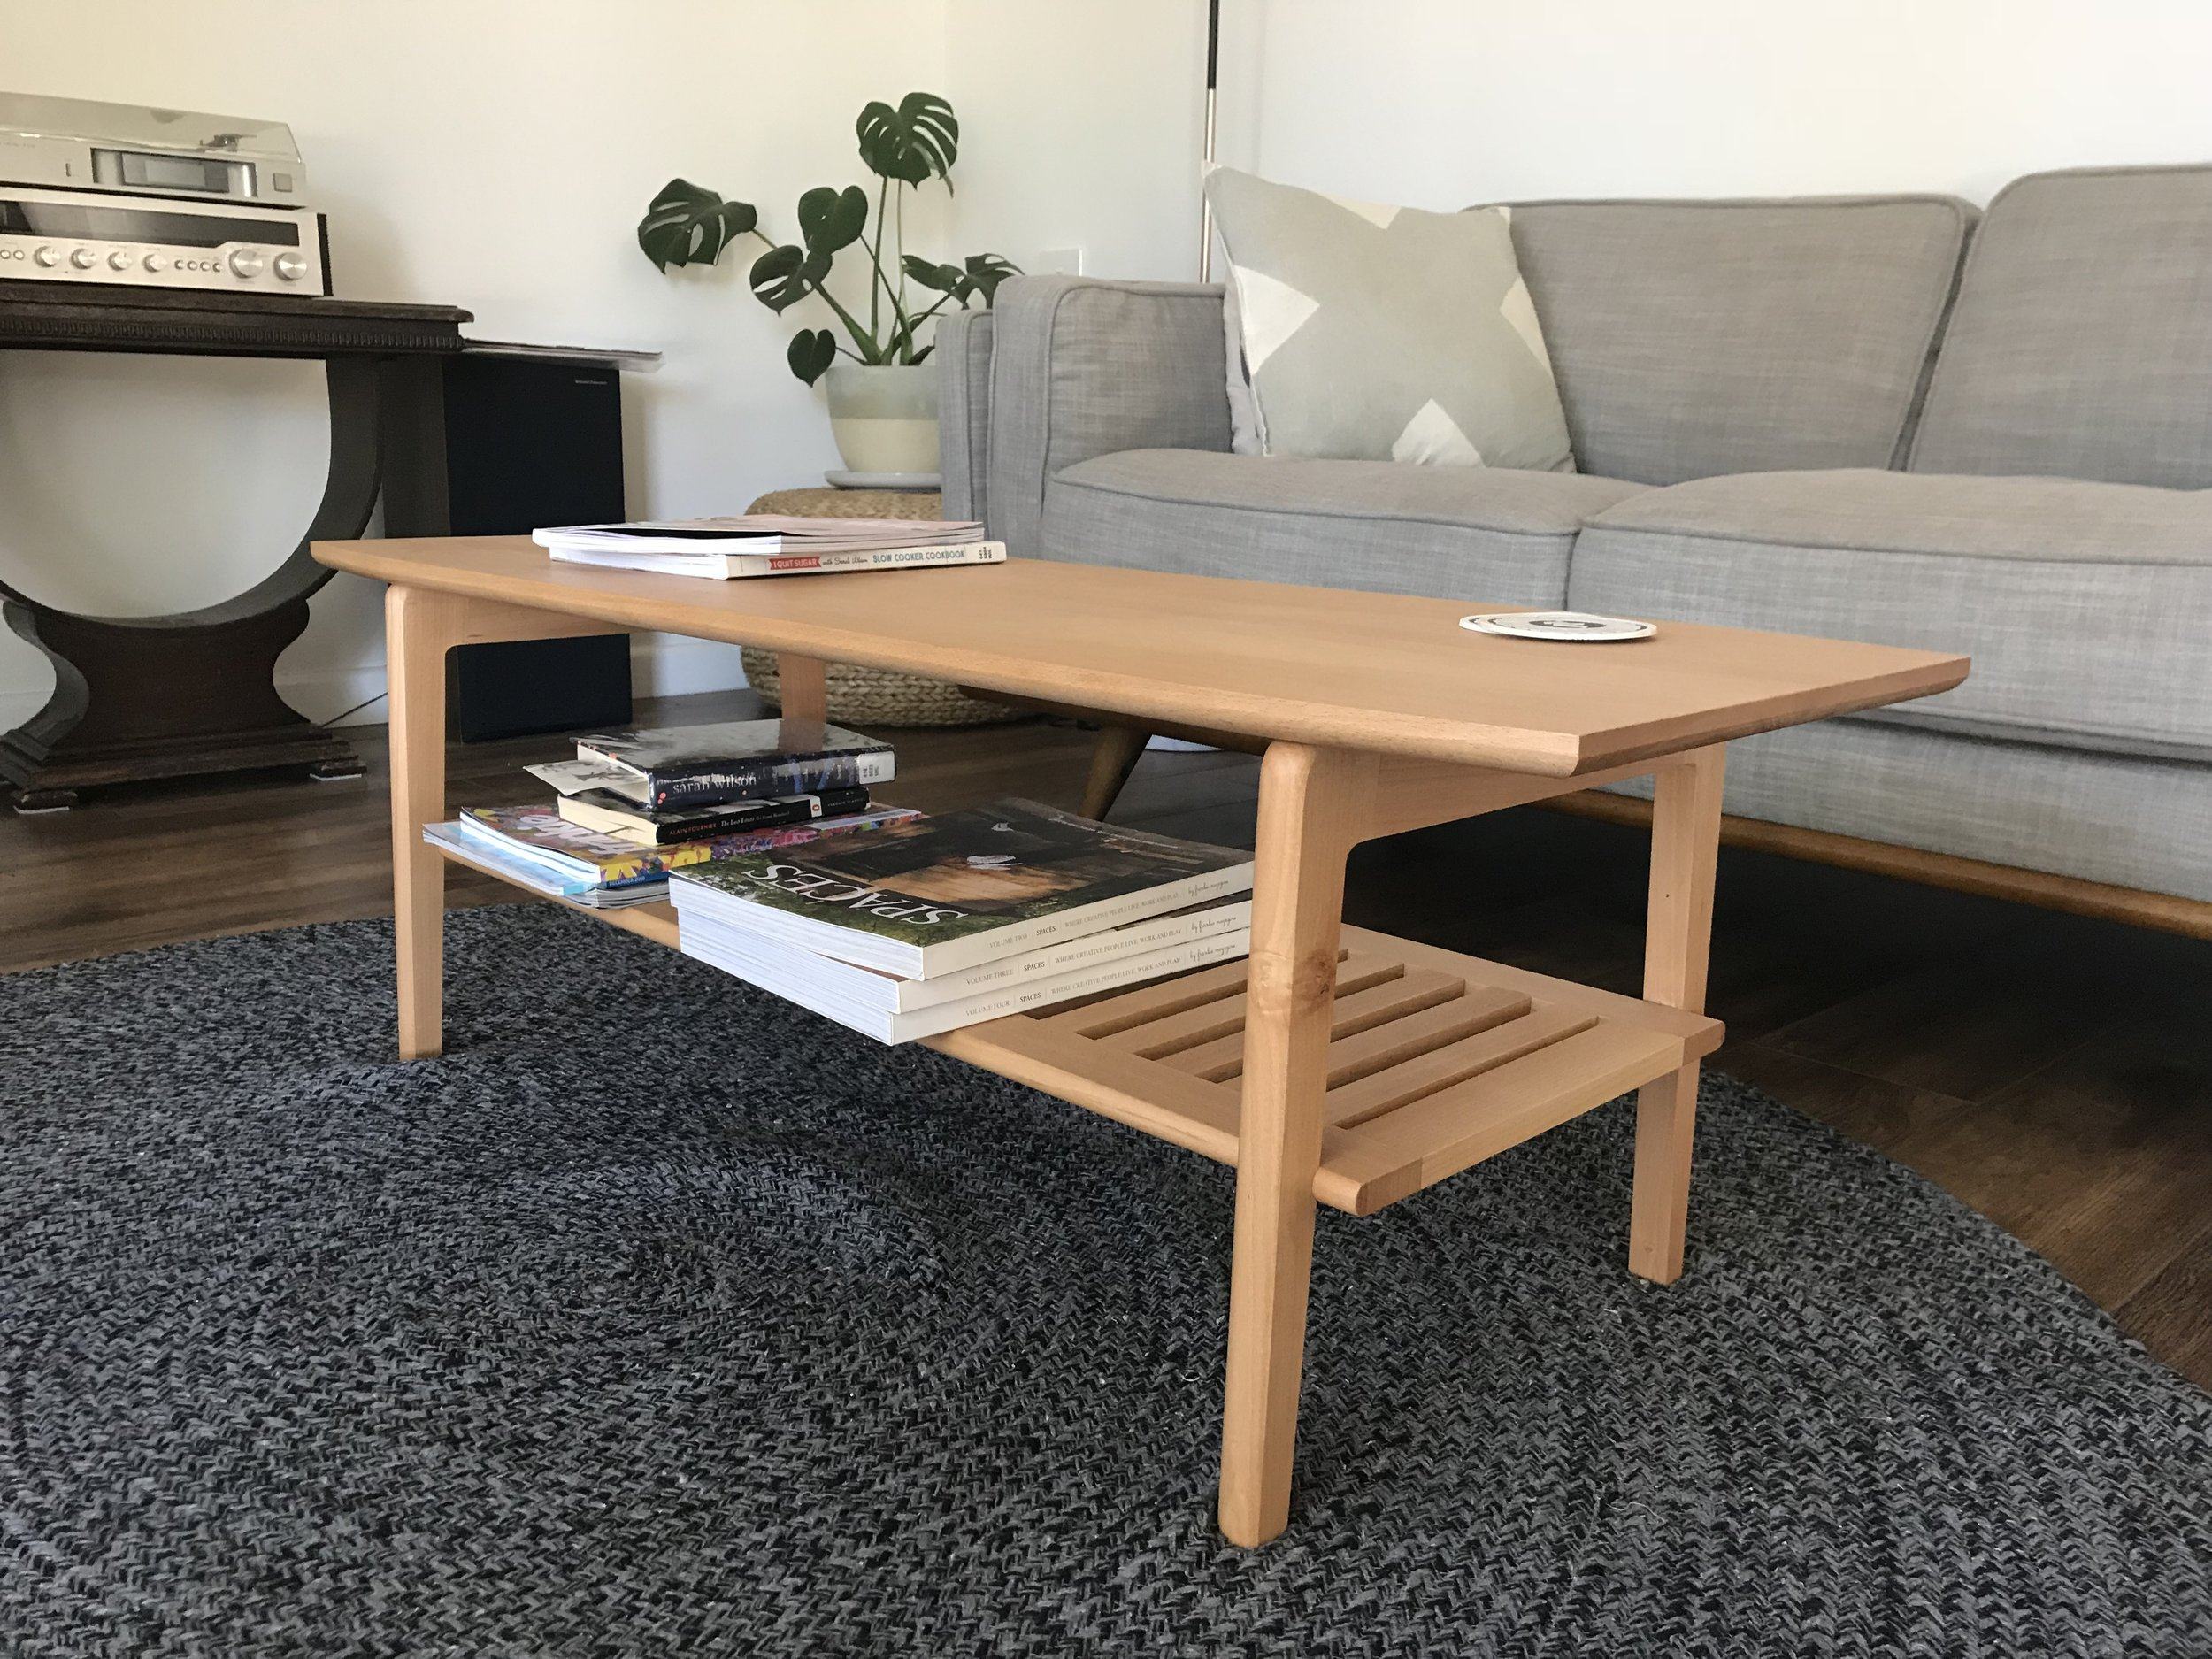 coffee table.jpg